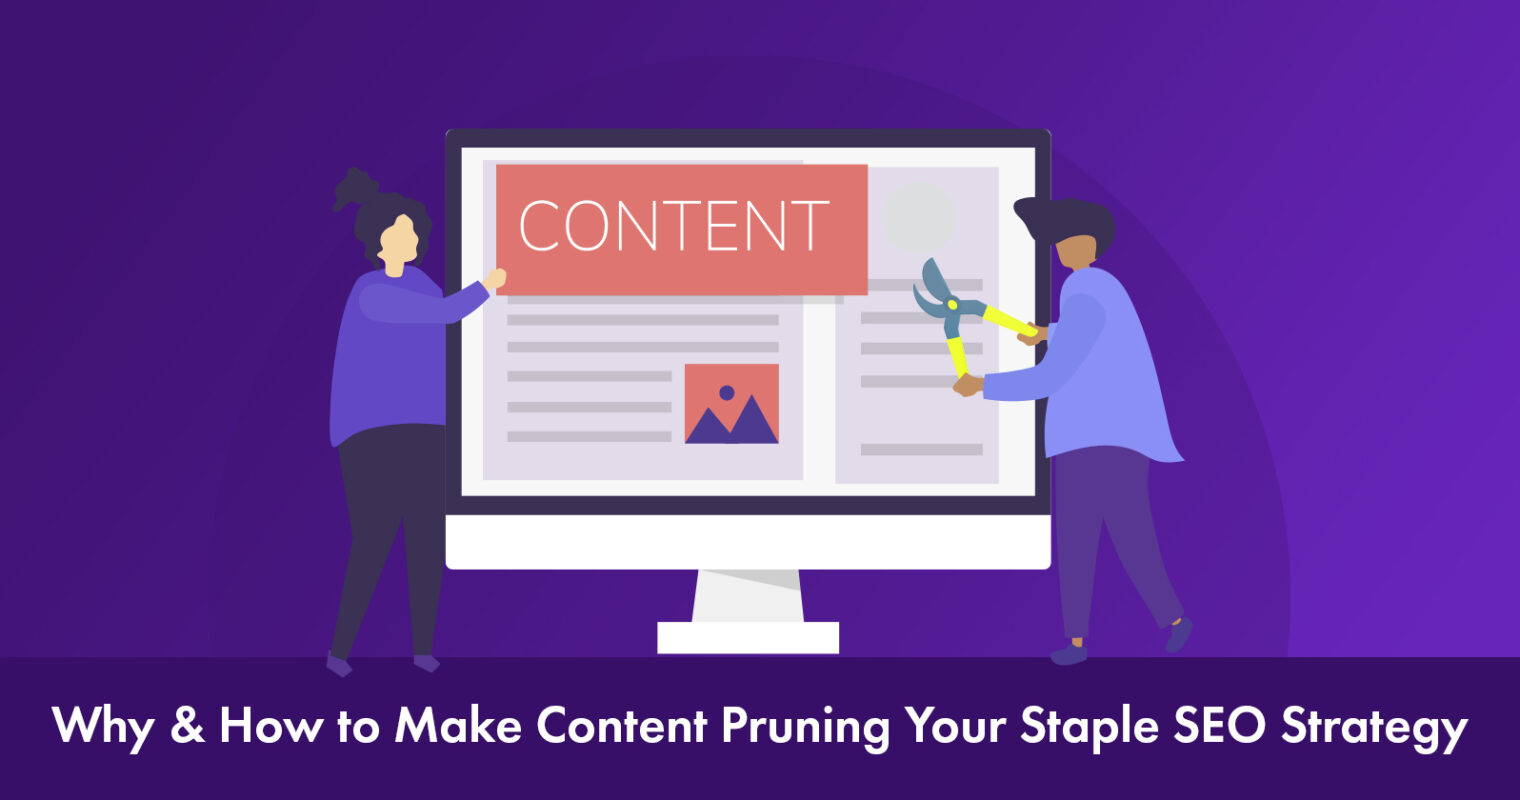 Why & How Content Pruning Helps Your SEO